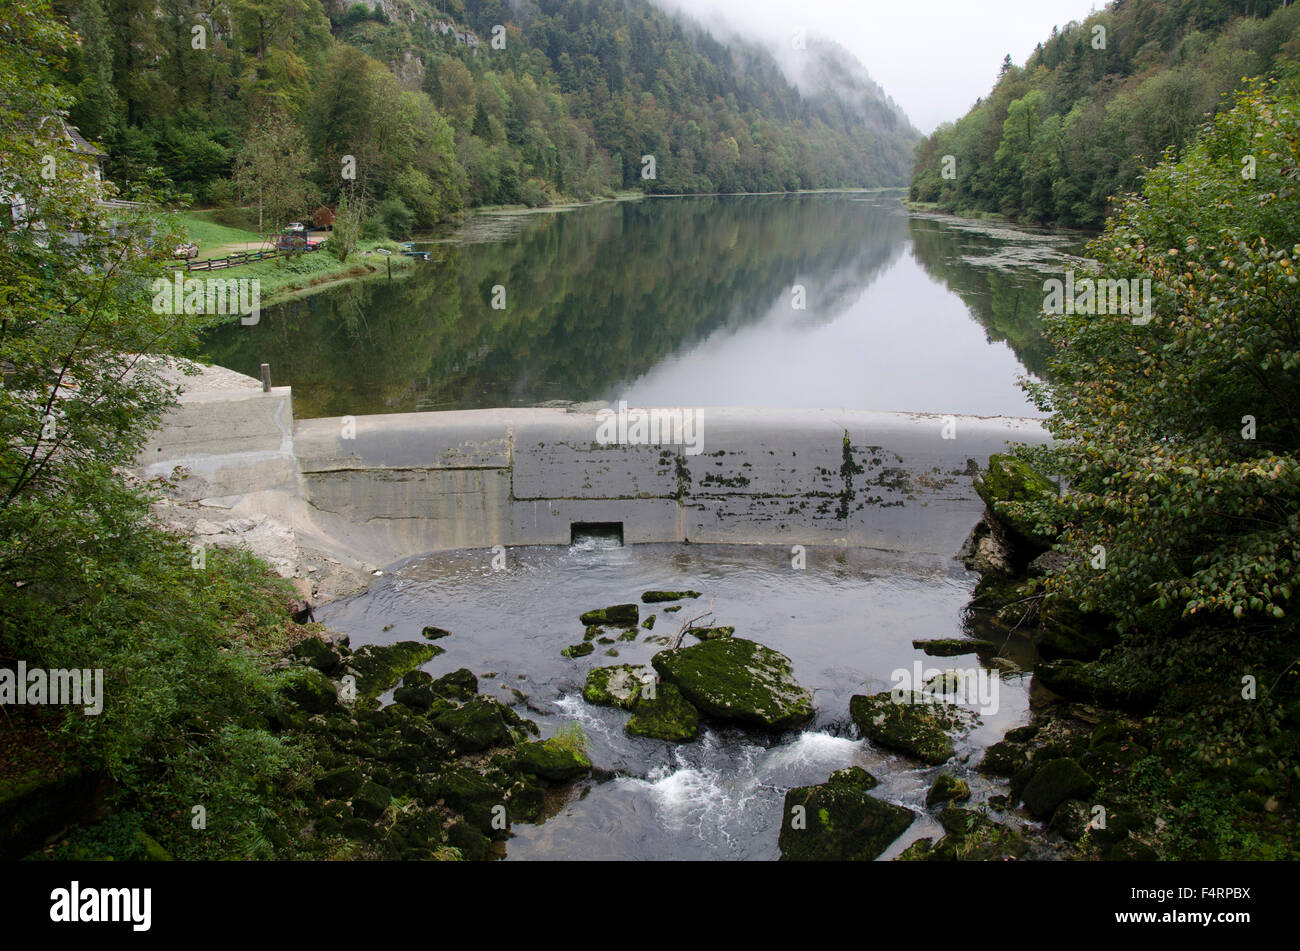 Doubs, river, flow, Switzerland, Europe, France, border, La Goule, traffic jam wall, power station, stream, current, - Stock Image